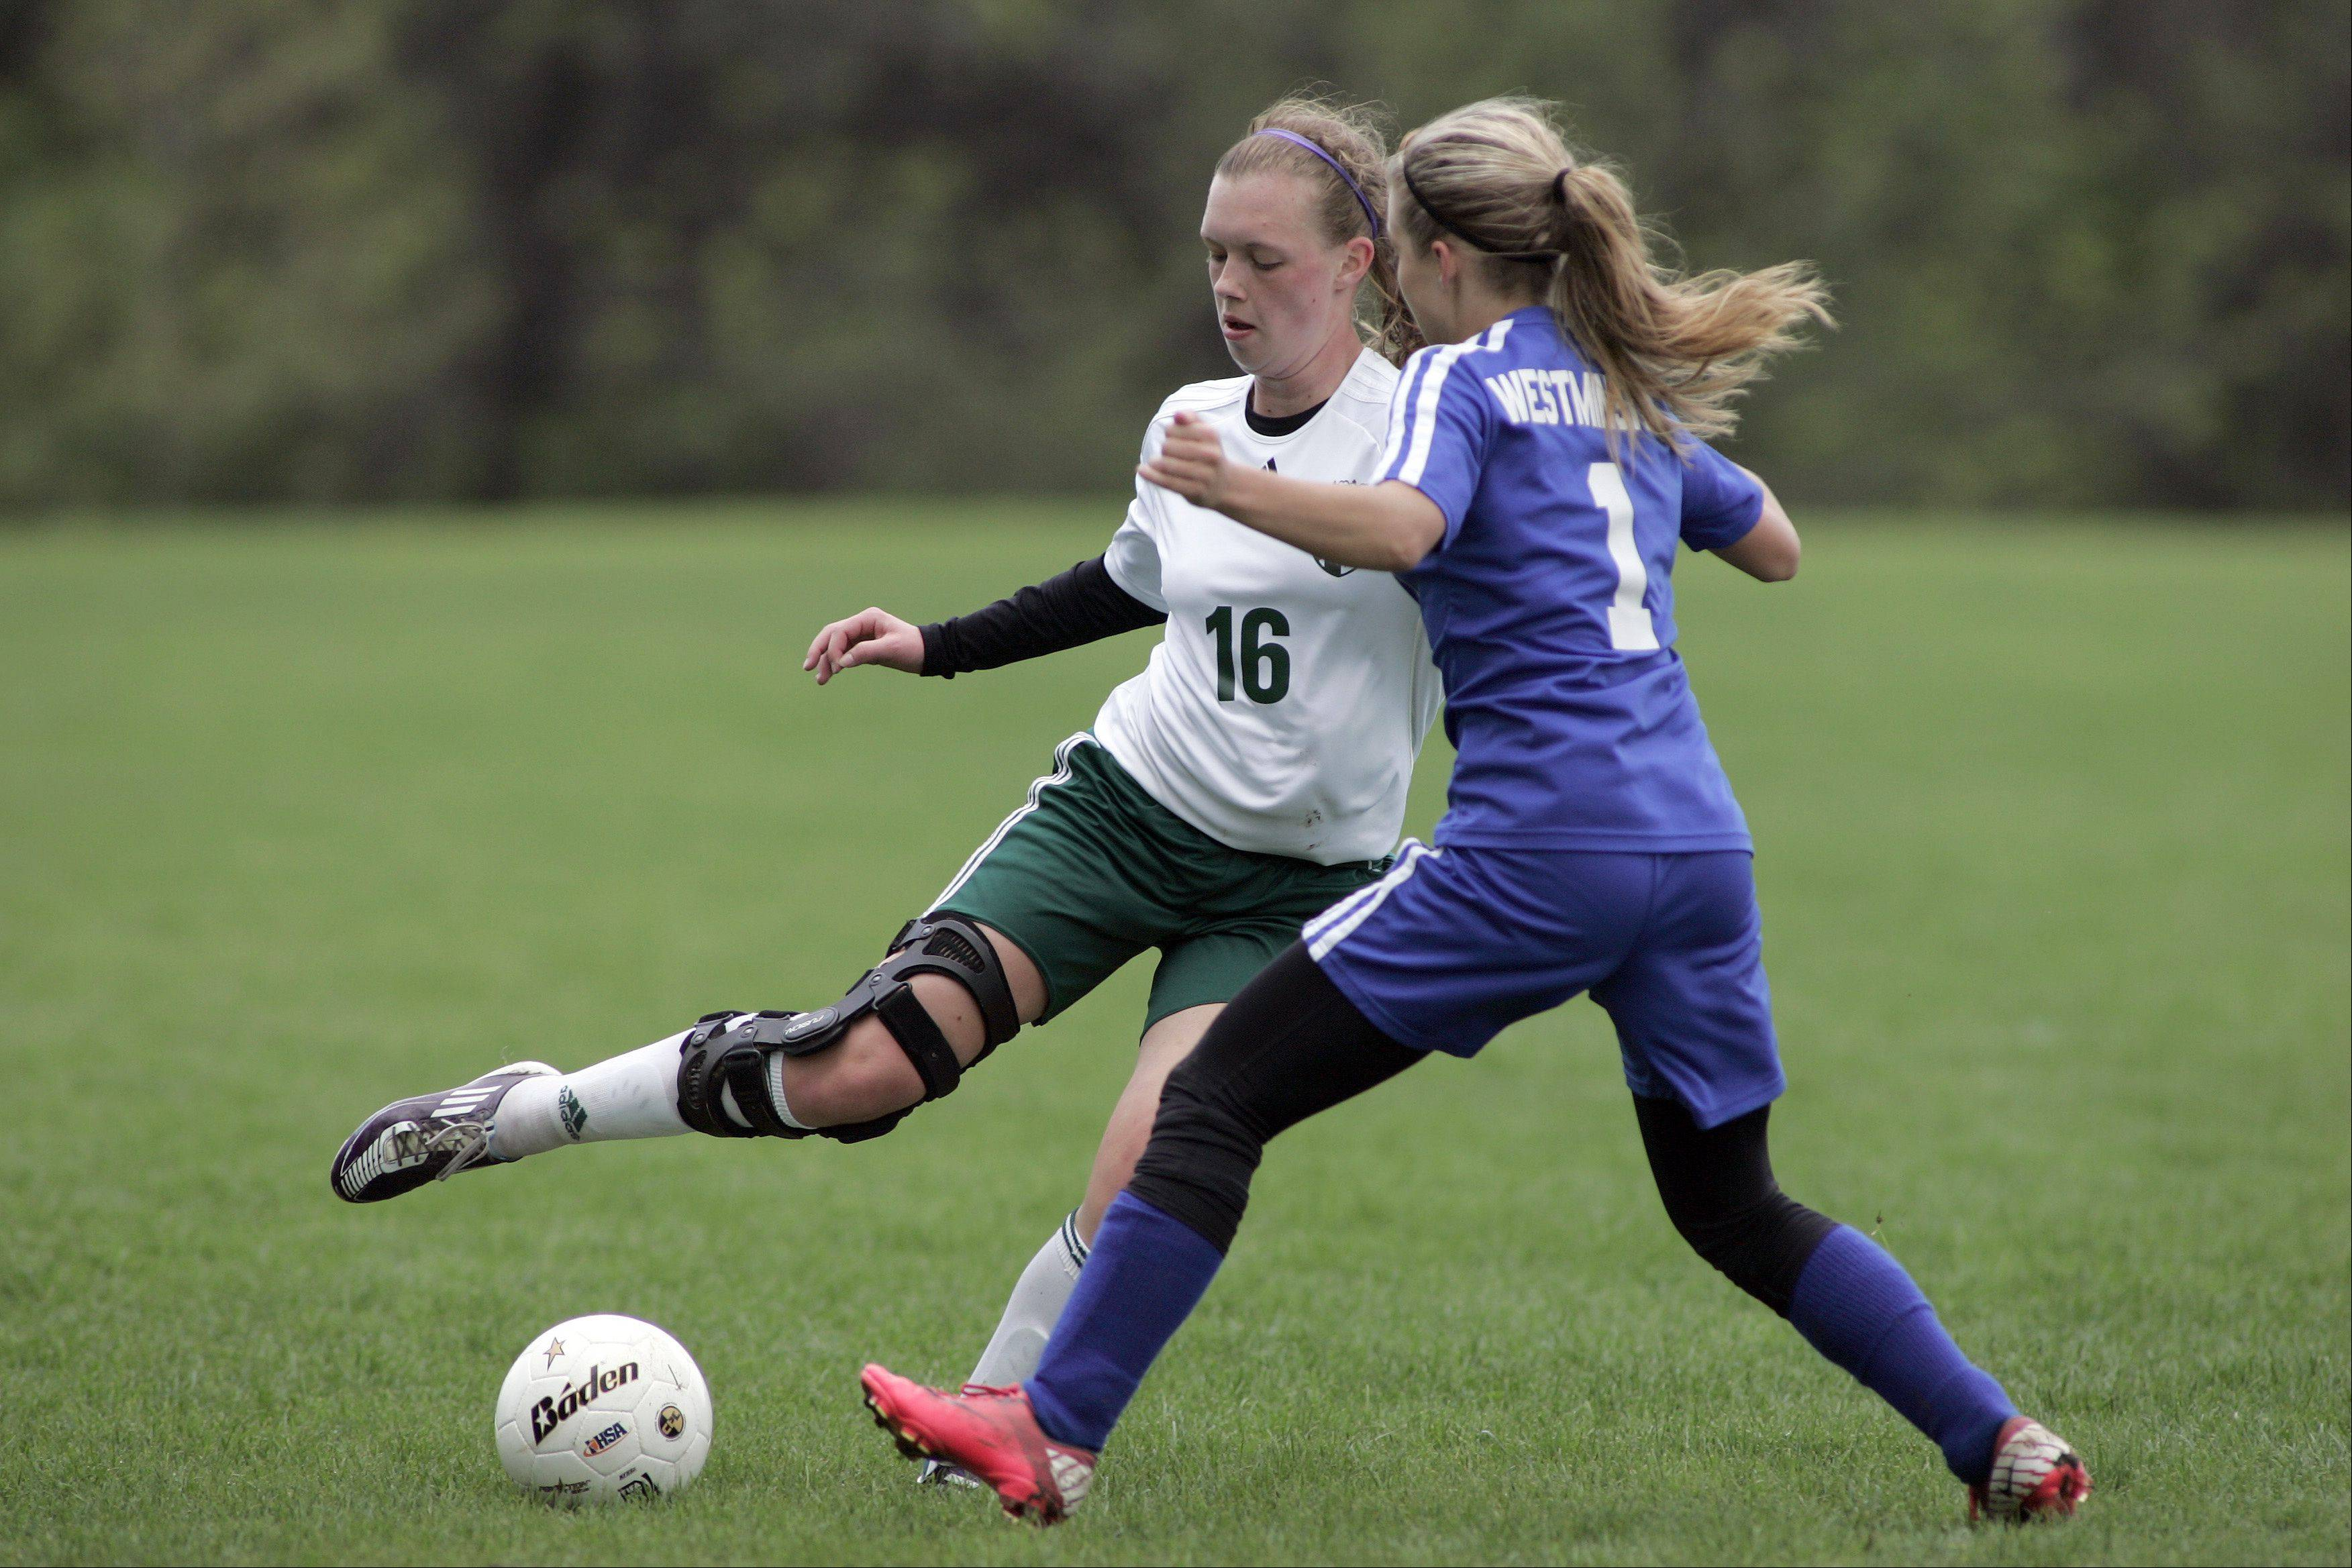 St. Edward's Olivia Kochanek works to get around Westminster's Alexa Pedersen Saturday.